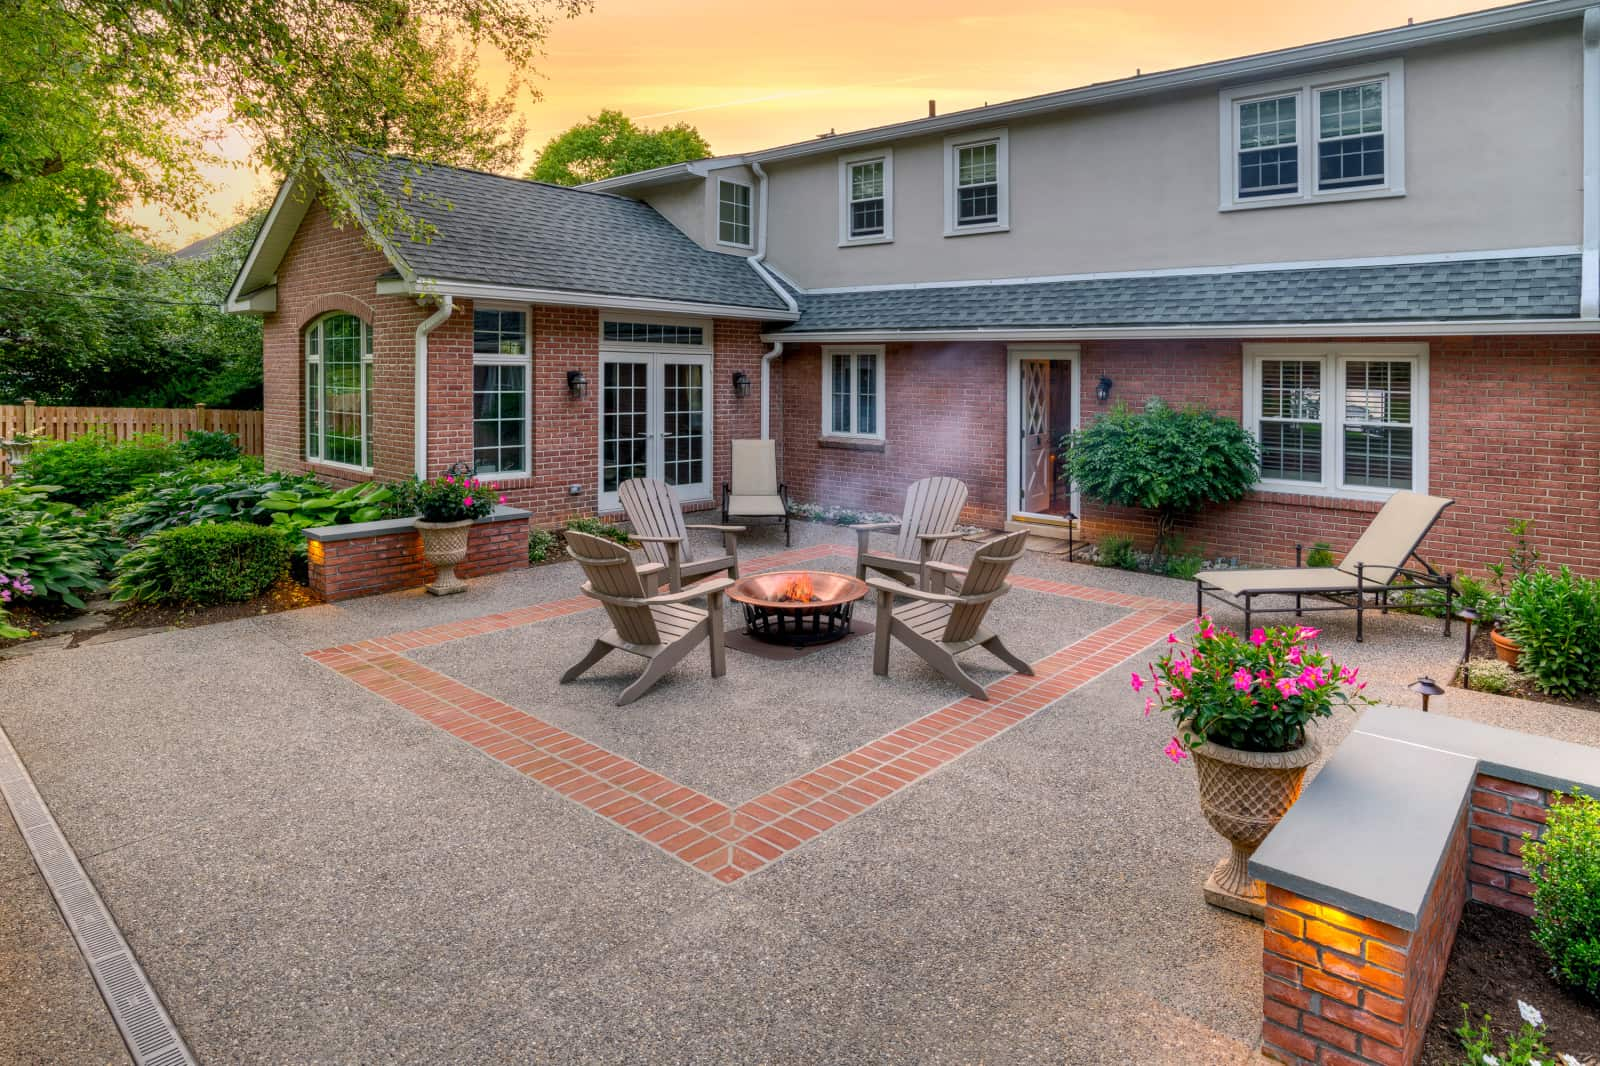 exposed aggregate-style backyard concrete patio with brick accent in the center and seatwall surrounding it